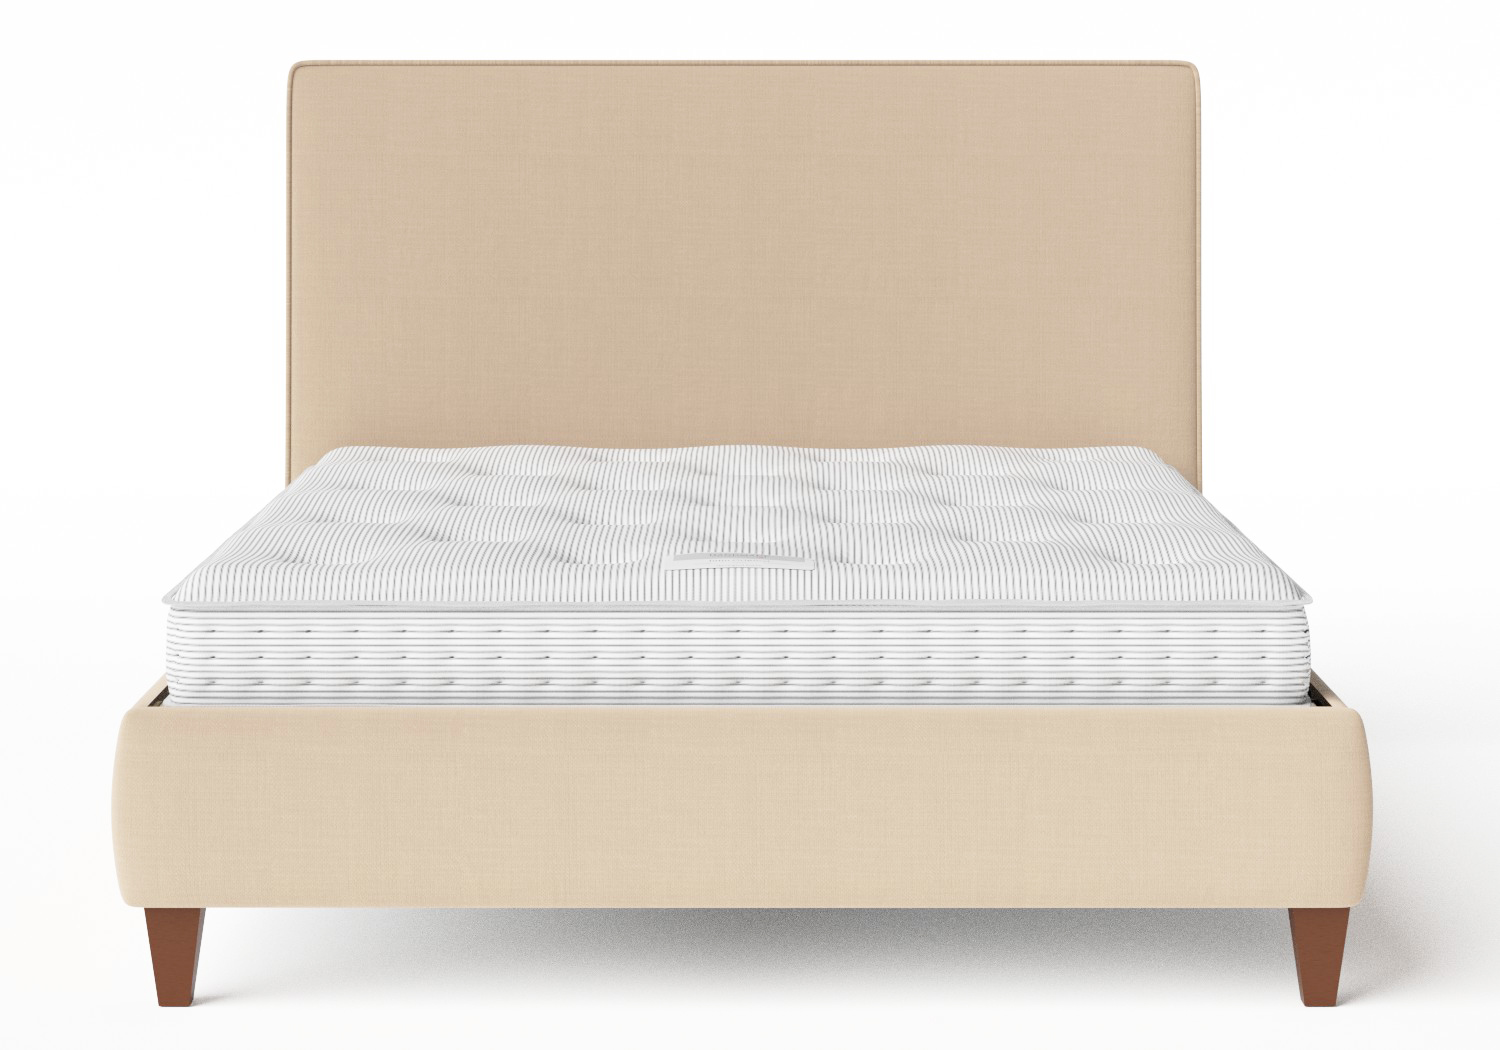 Yushan Upholstered Bed in Natural fabric with piping shown with Juno 1 mattress